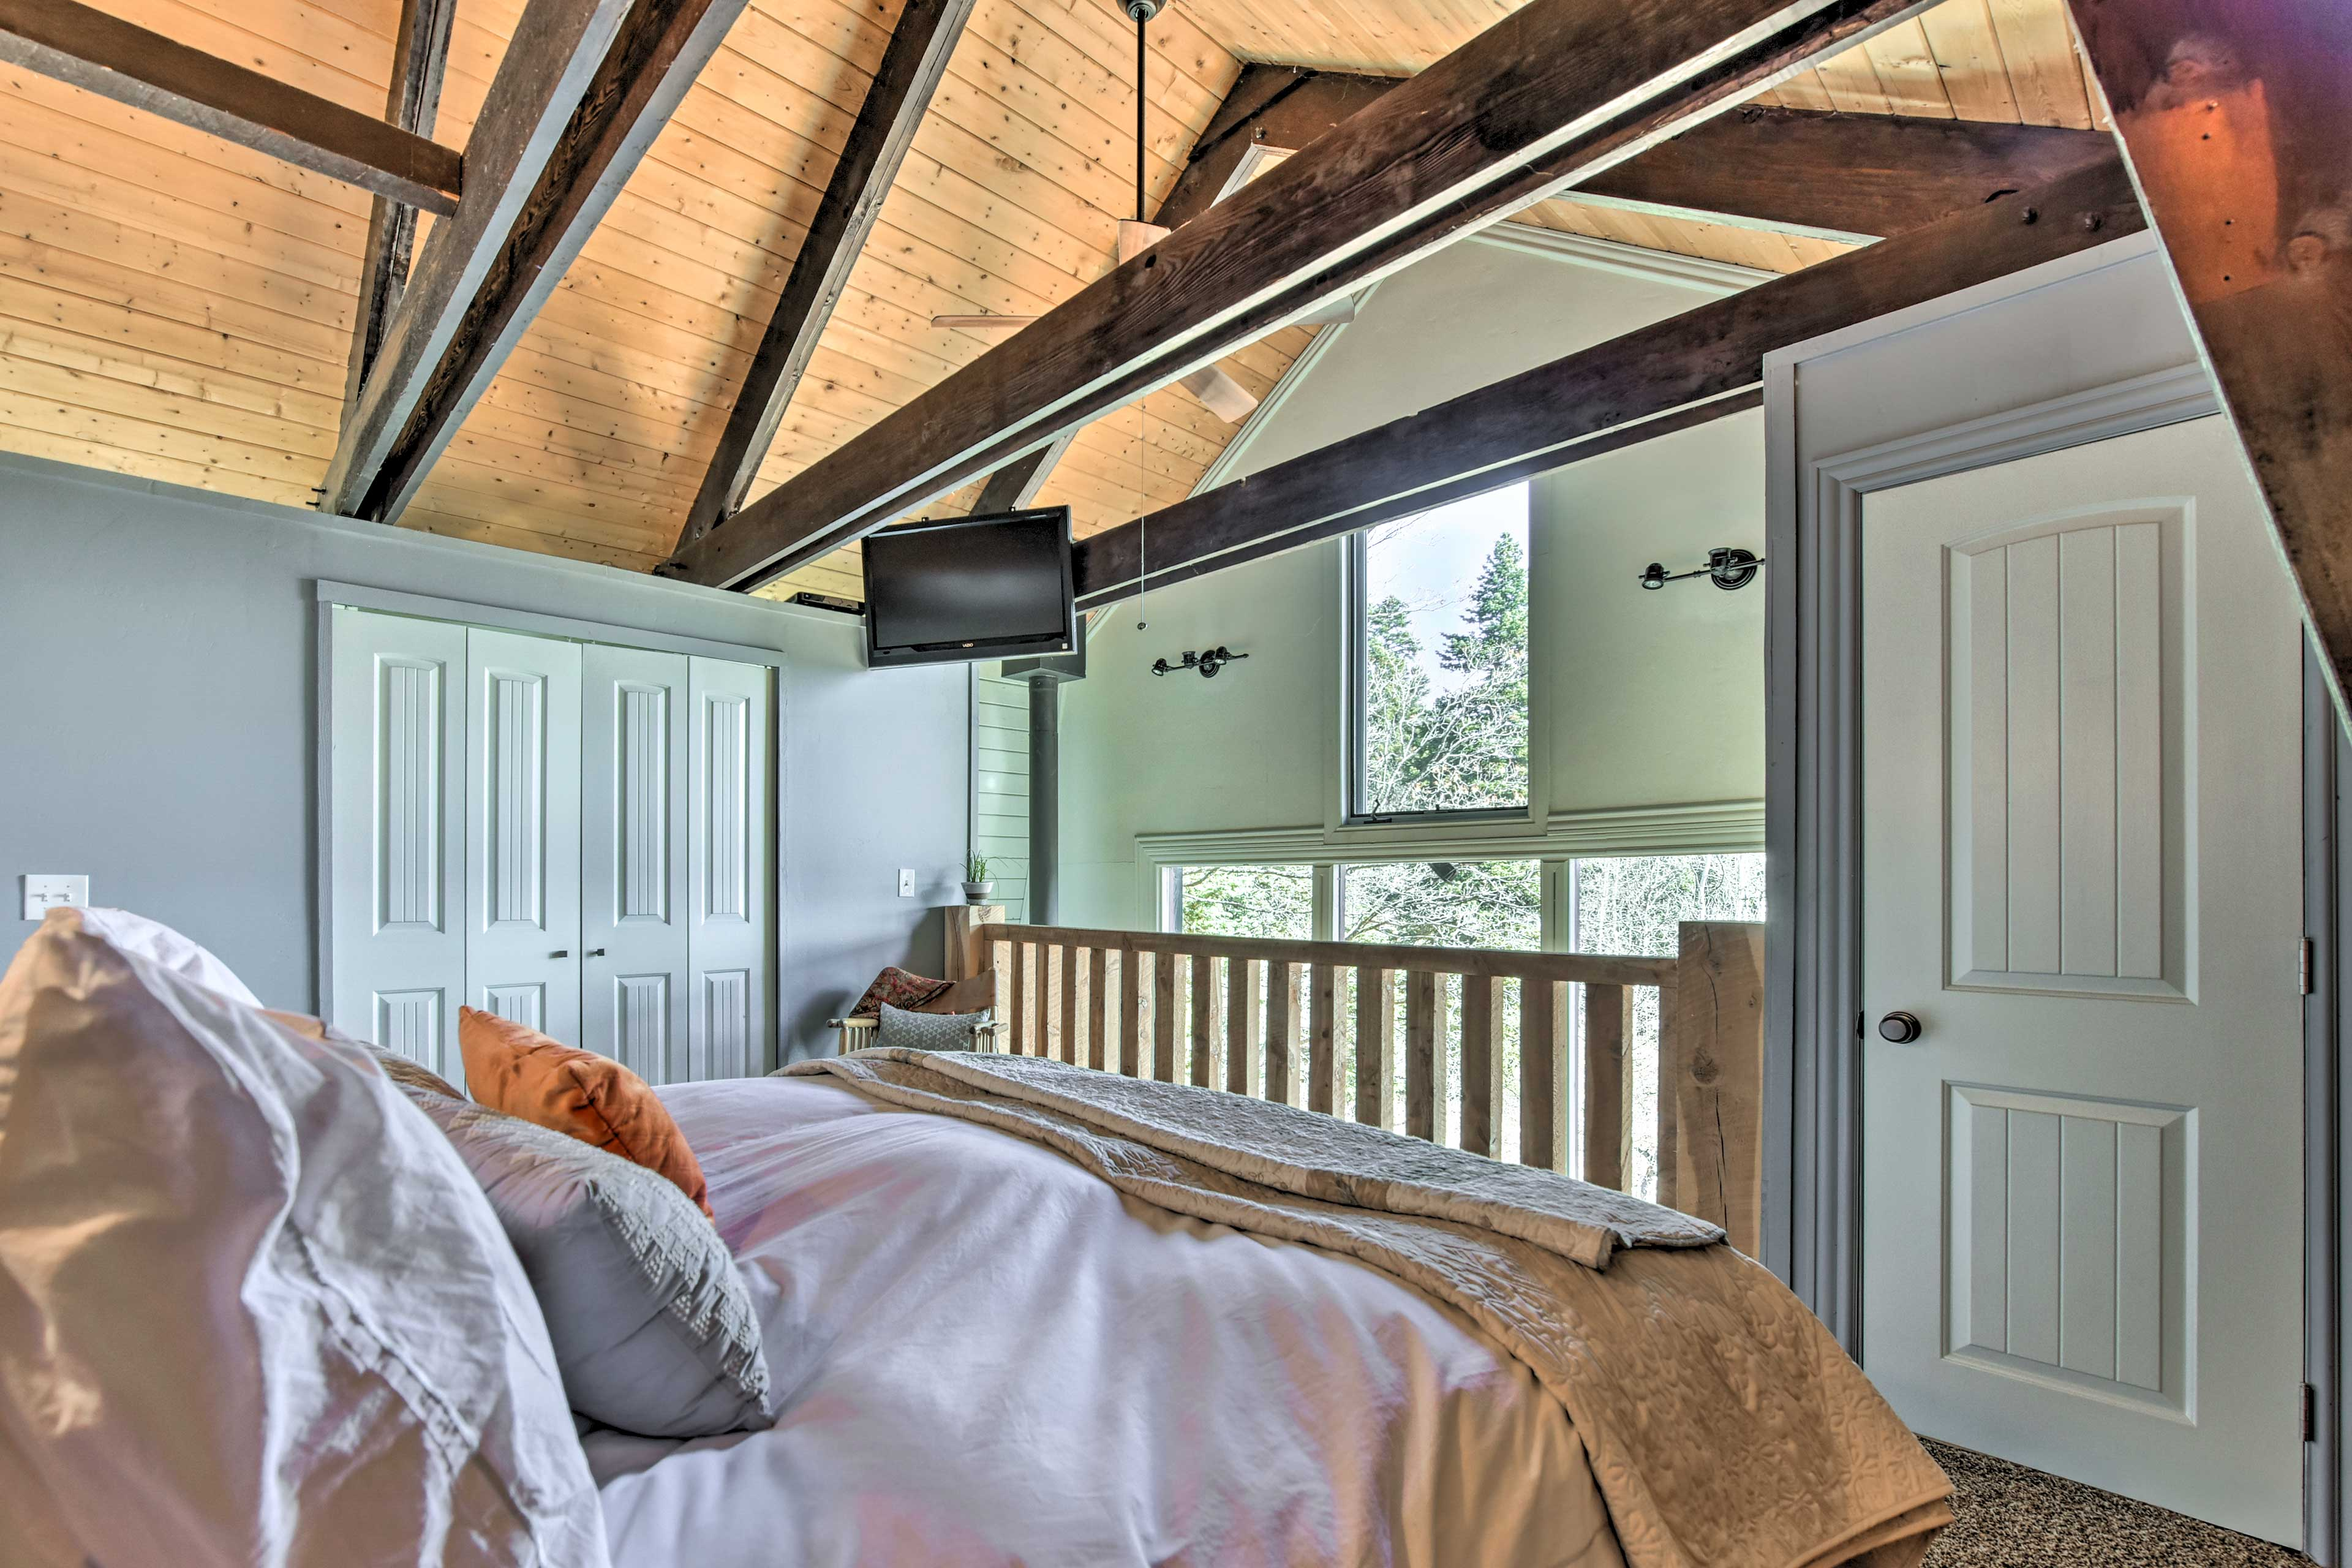 Rise and shine to natural sunlight streaming through the adjacent windows.